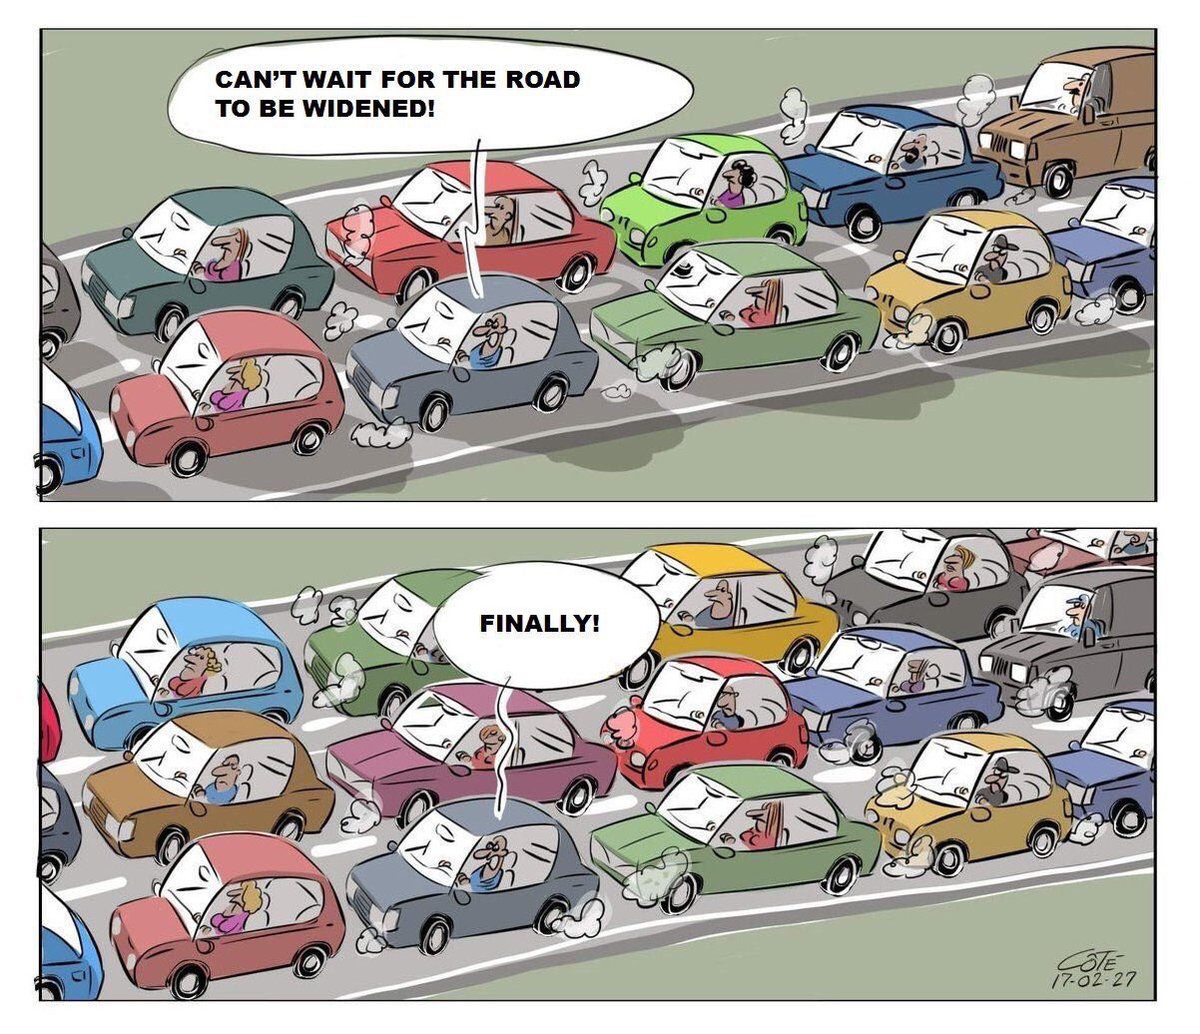 """Brent Toderian on Twitter: """"It's related to the proven tendancy for new  freeway capacity to quickly fill up, referred to as #inducedtraffic or the  #lawofcongestion.… https://t.co/QbnM4fBNwA"""""""